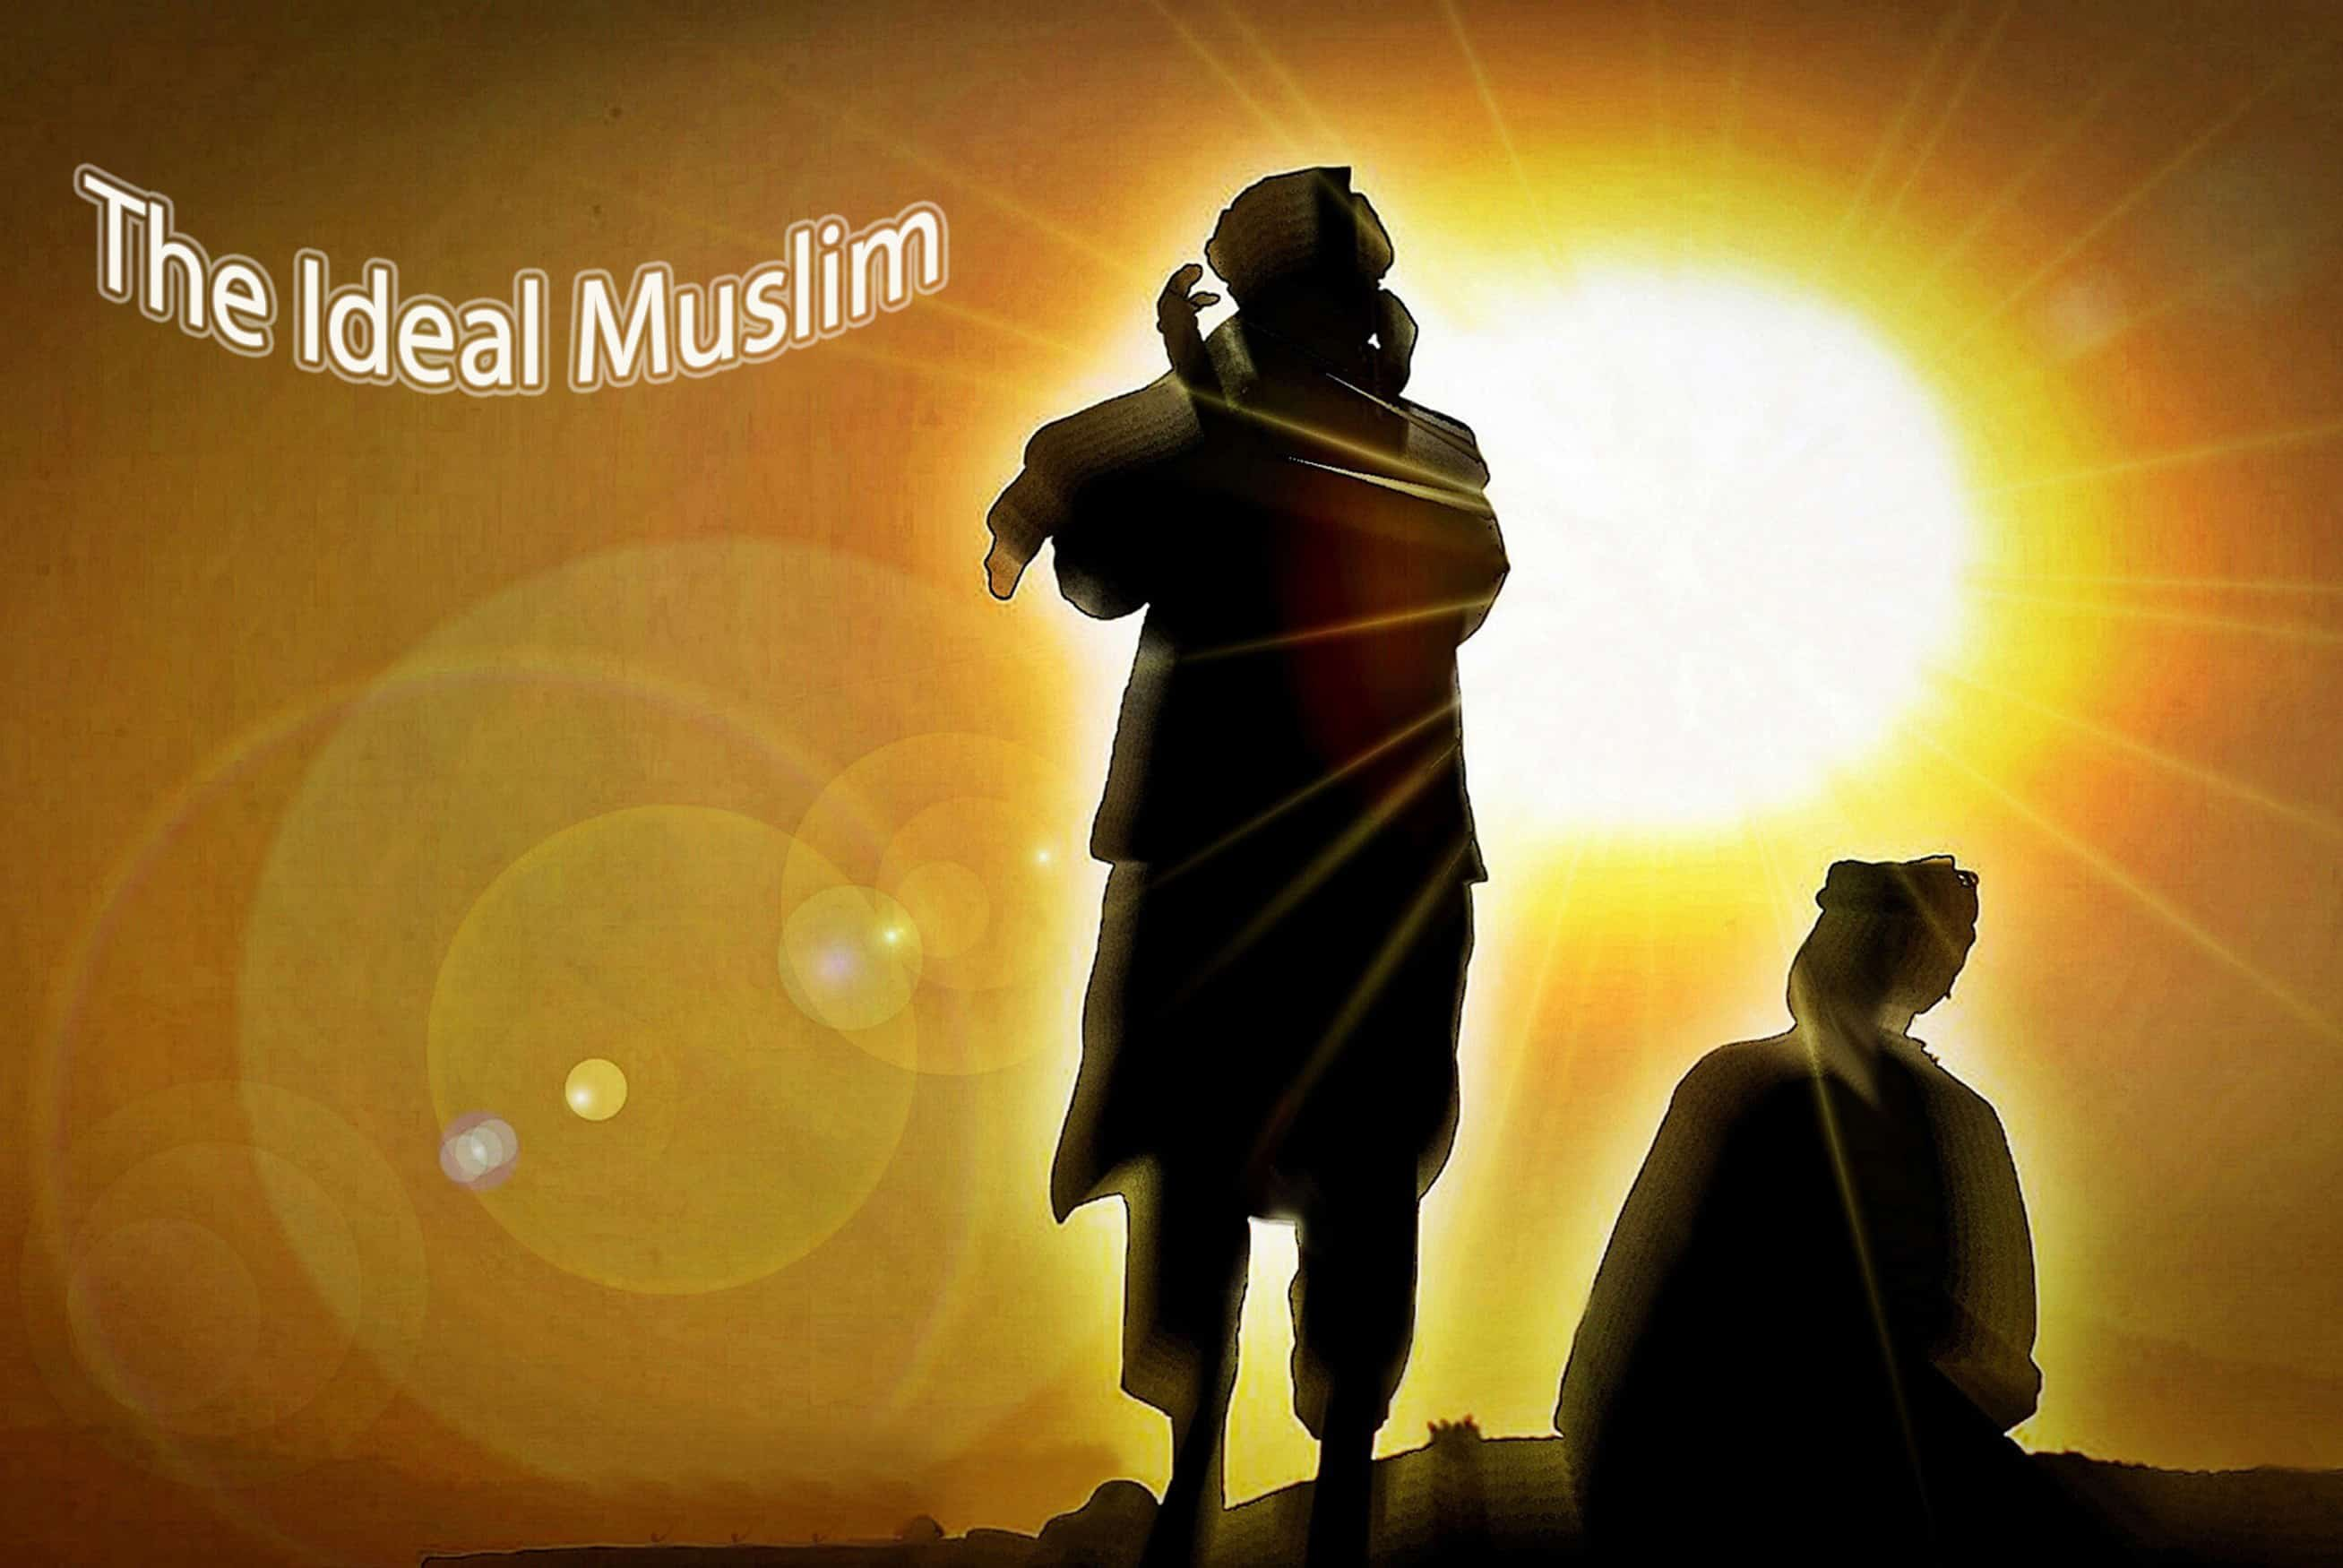 The Ideal Muslim - Fact or Fiction? 1